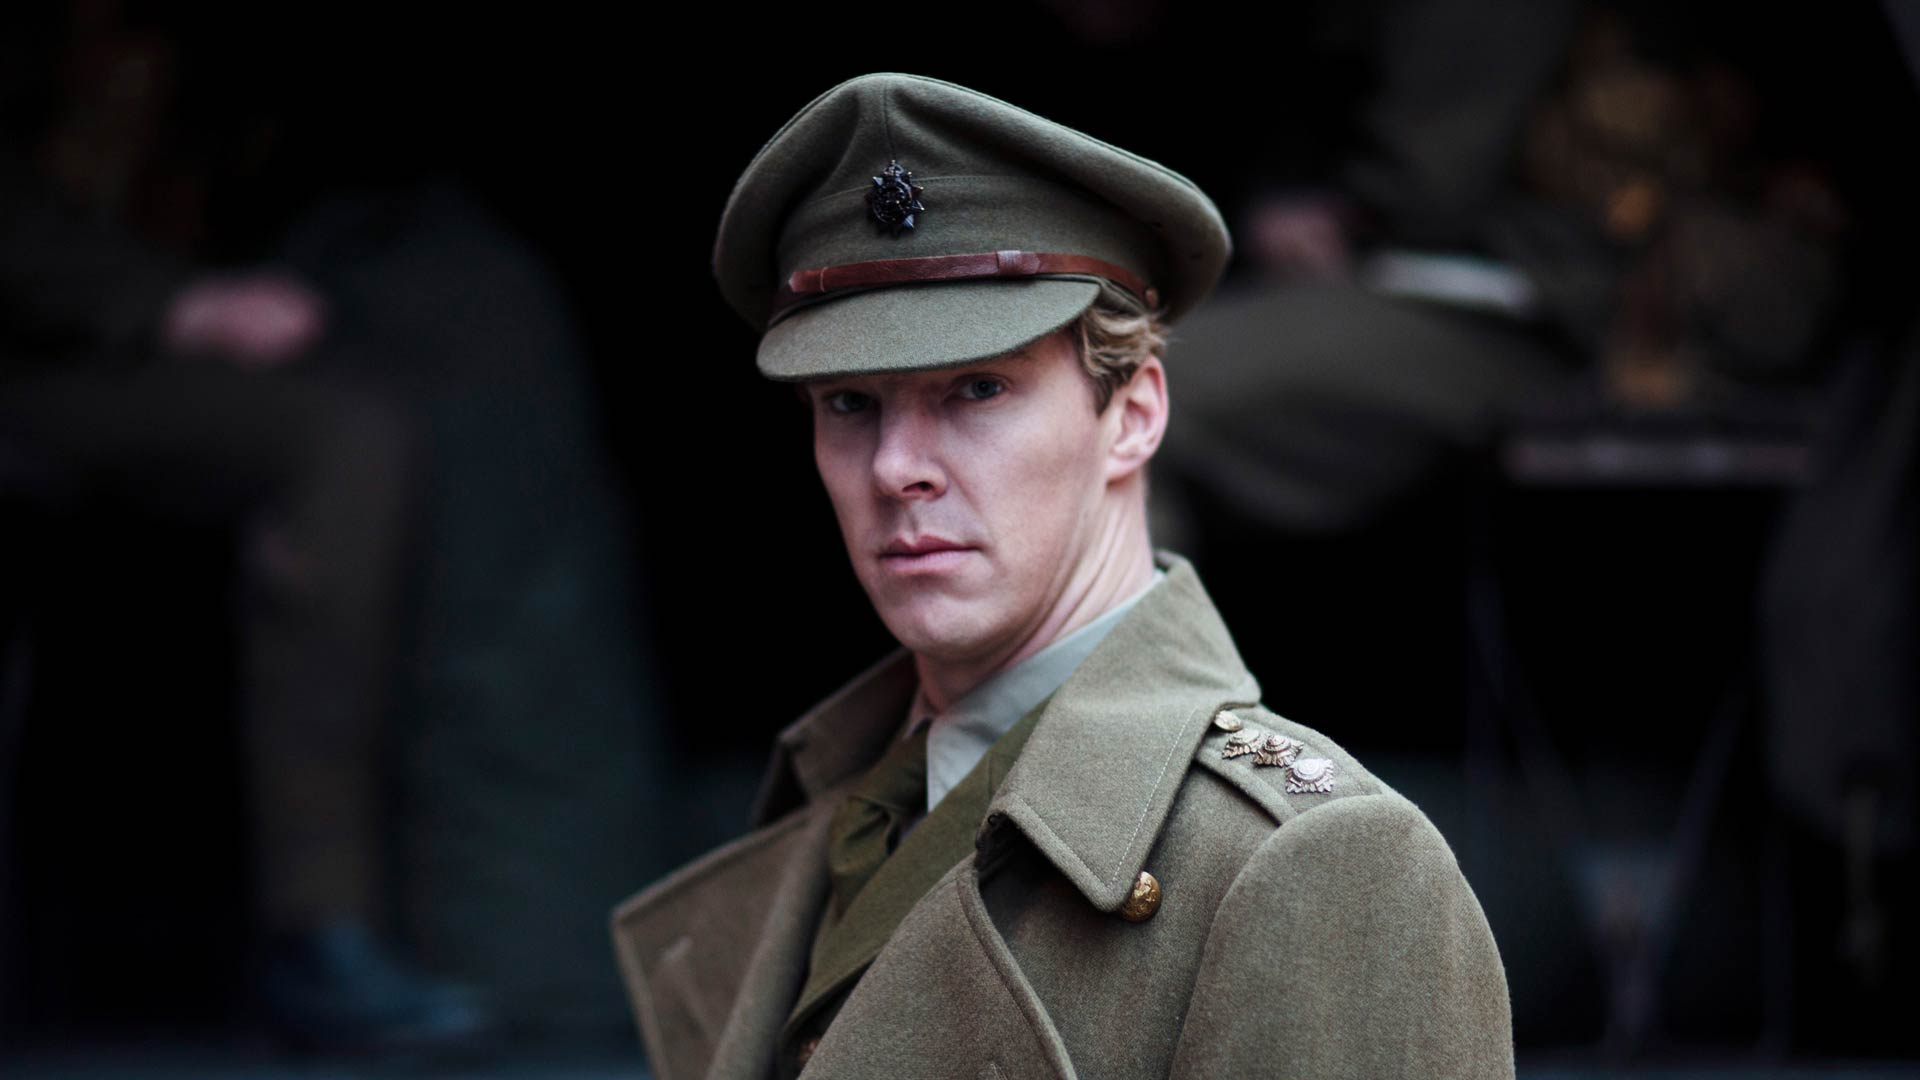 <strong>Parade's End</strong> The BBC and HBO teamed up for another Cumberbatch series in 2012 with <i>Parade's End</i> which saw the actor play Christopher Tietjens, an English aristocrat and statistician for the British government.